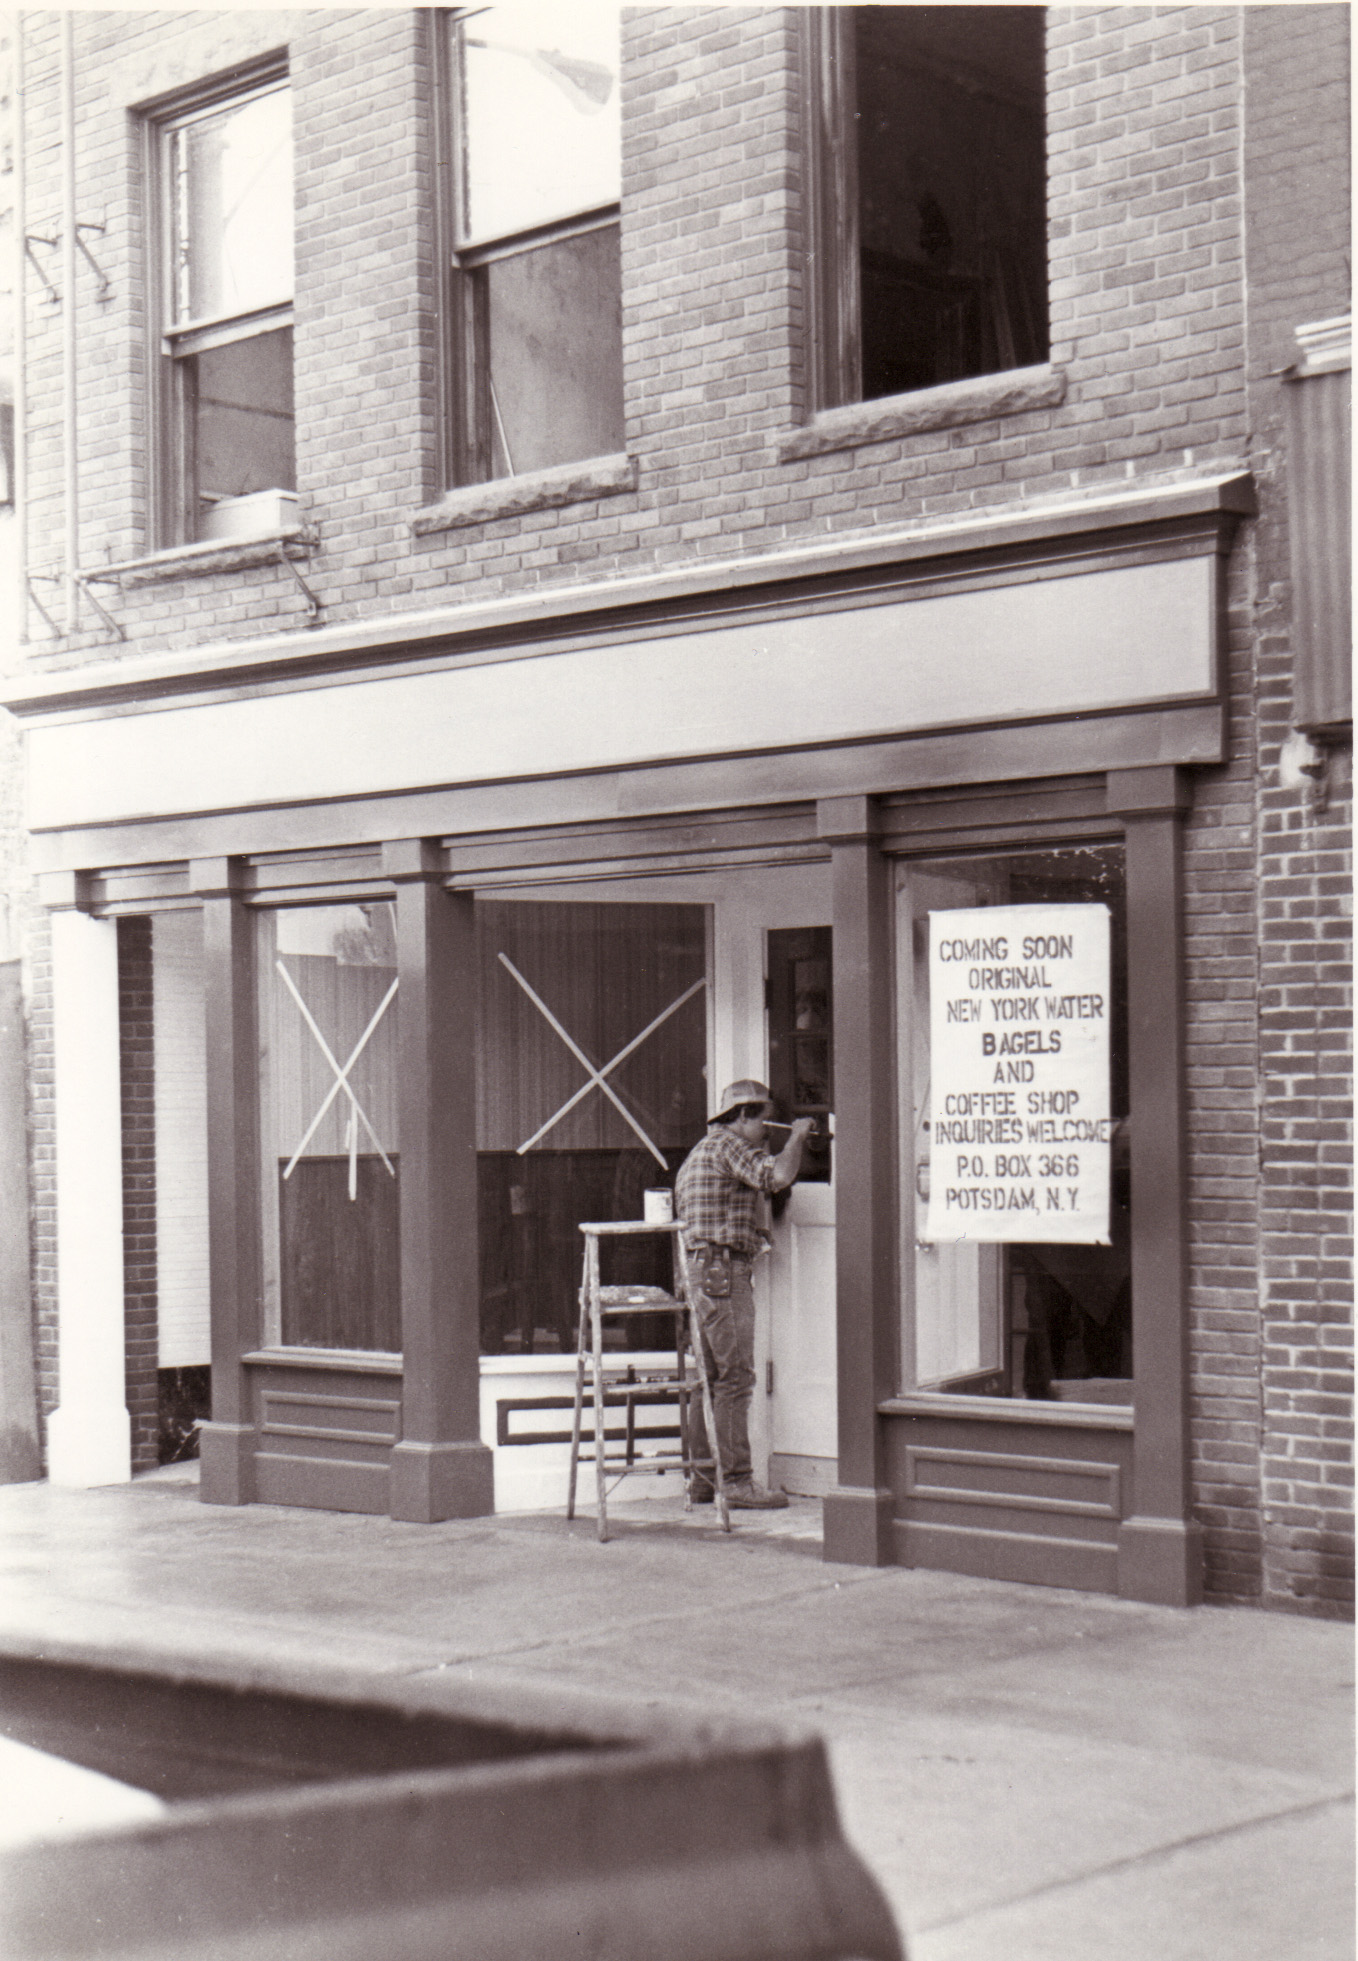 Our Original Location, 1982: St. Lawrence County's oldest Bagel and Coffee Shop